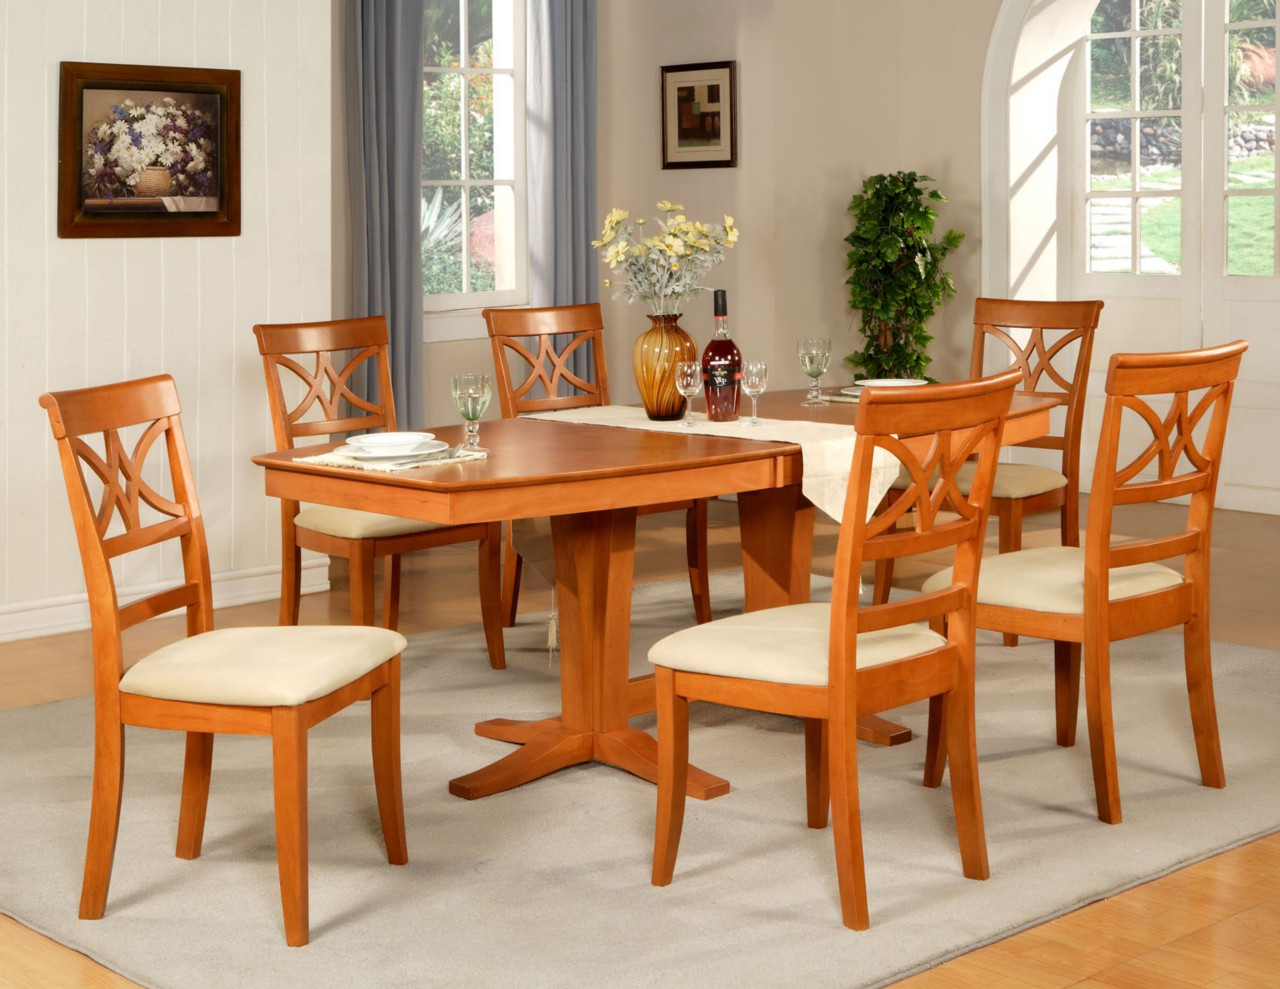 7pc Dining Room Set Table And 6 Wood Seat Chairs In Light Cherry Finish Ebay